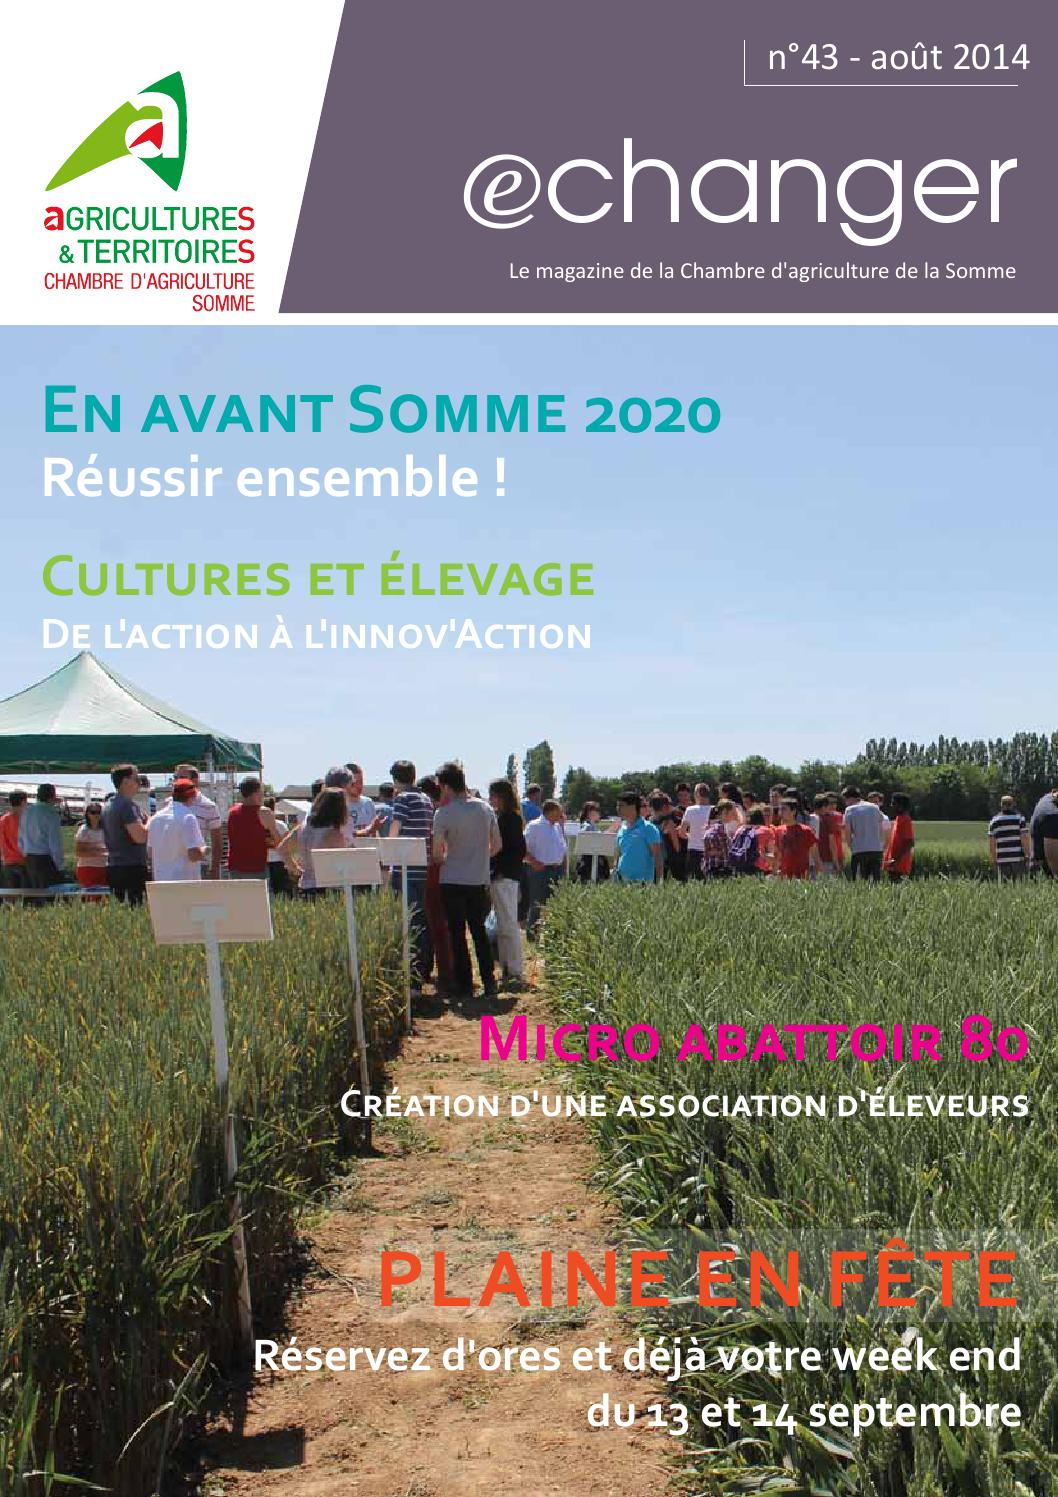 Echanger43basse r so by sylvie cavel issuu - Chambre departementale de l agriculture ...